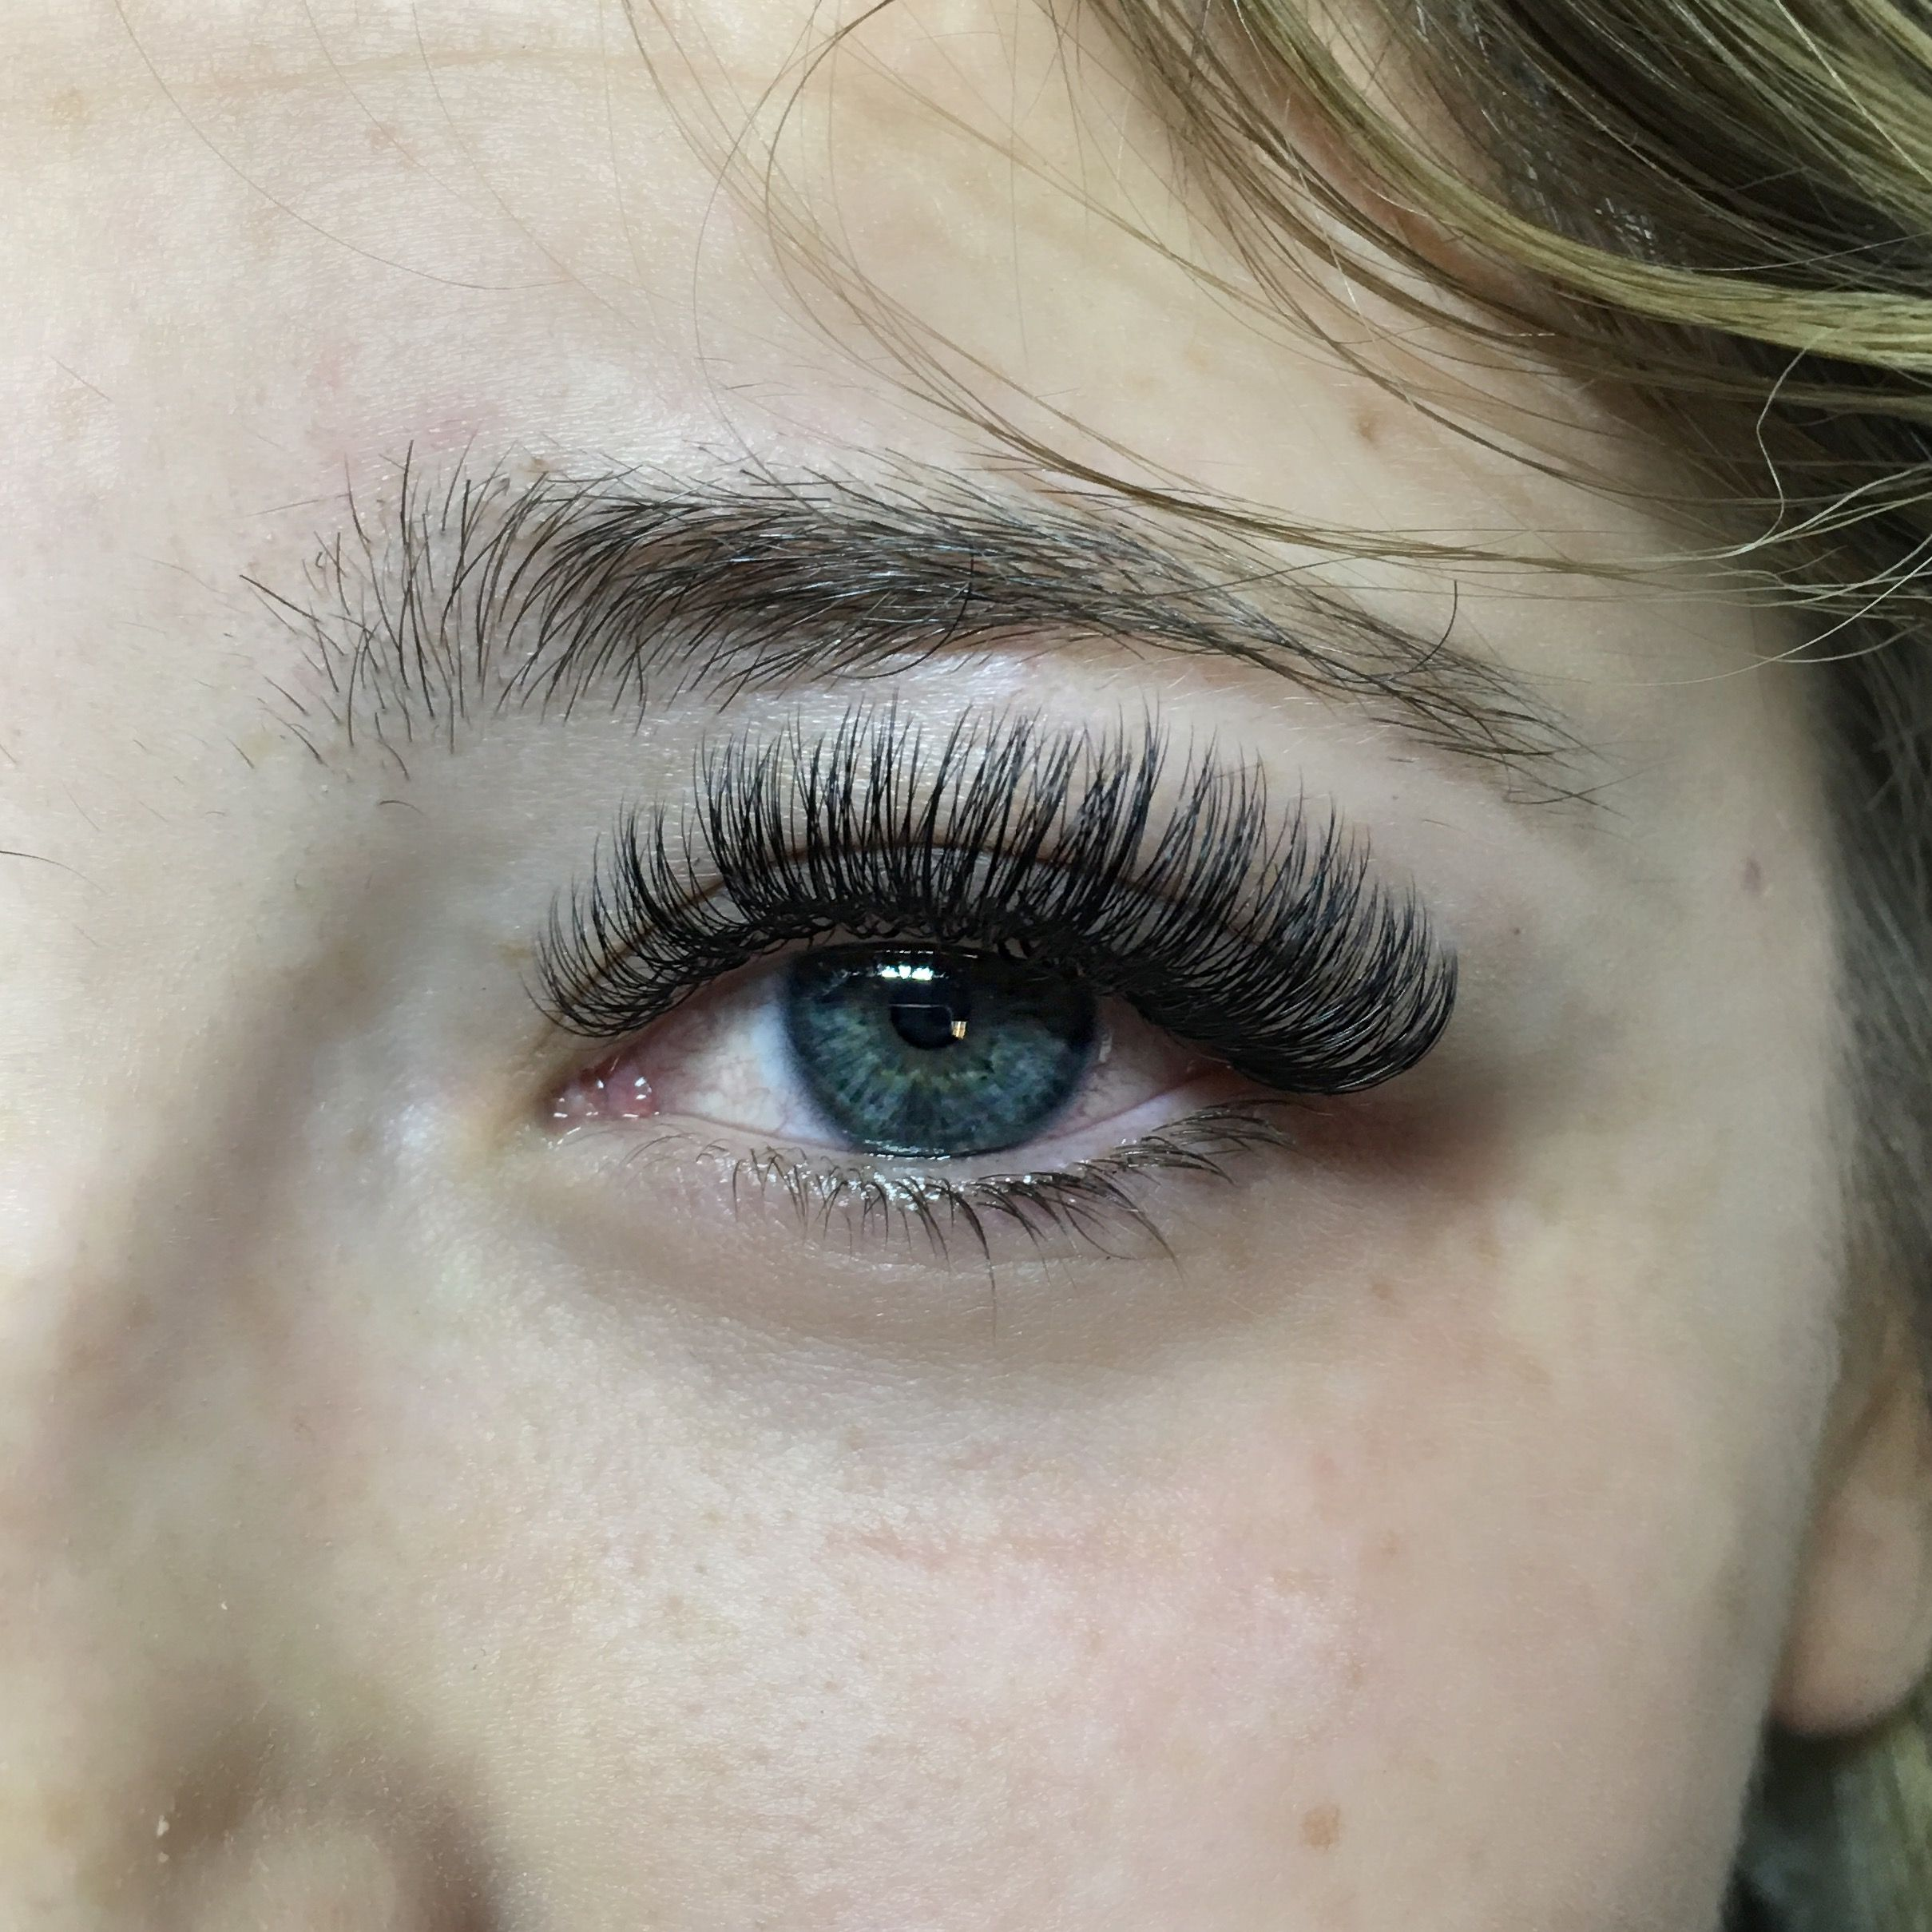 12a46dd580b Love the drama in her lashes. D curl volume full set @maggie_borboleta # lashes #lash #lashartist #eyelashextensions #volumelashes #beauty #eyelashes